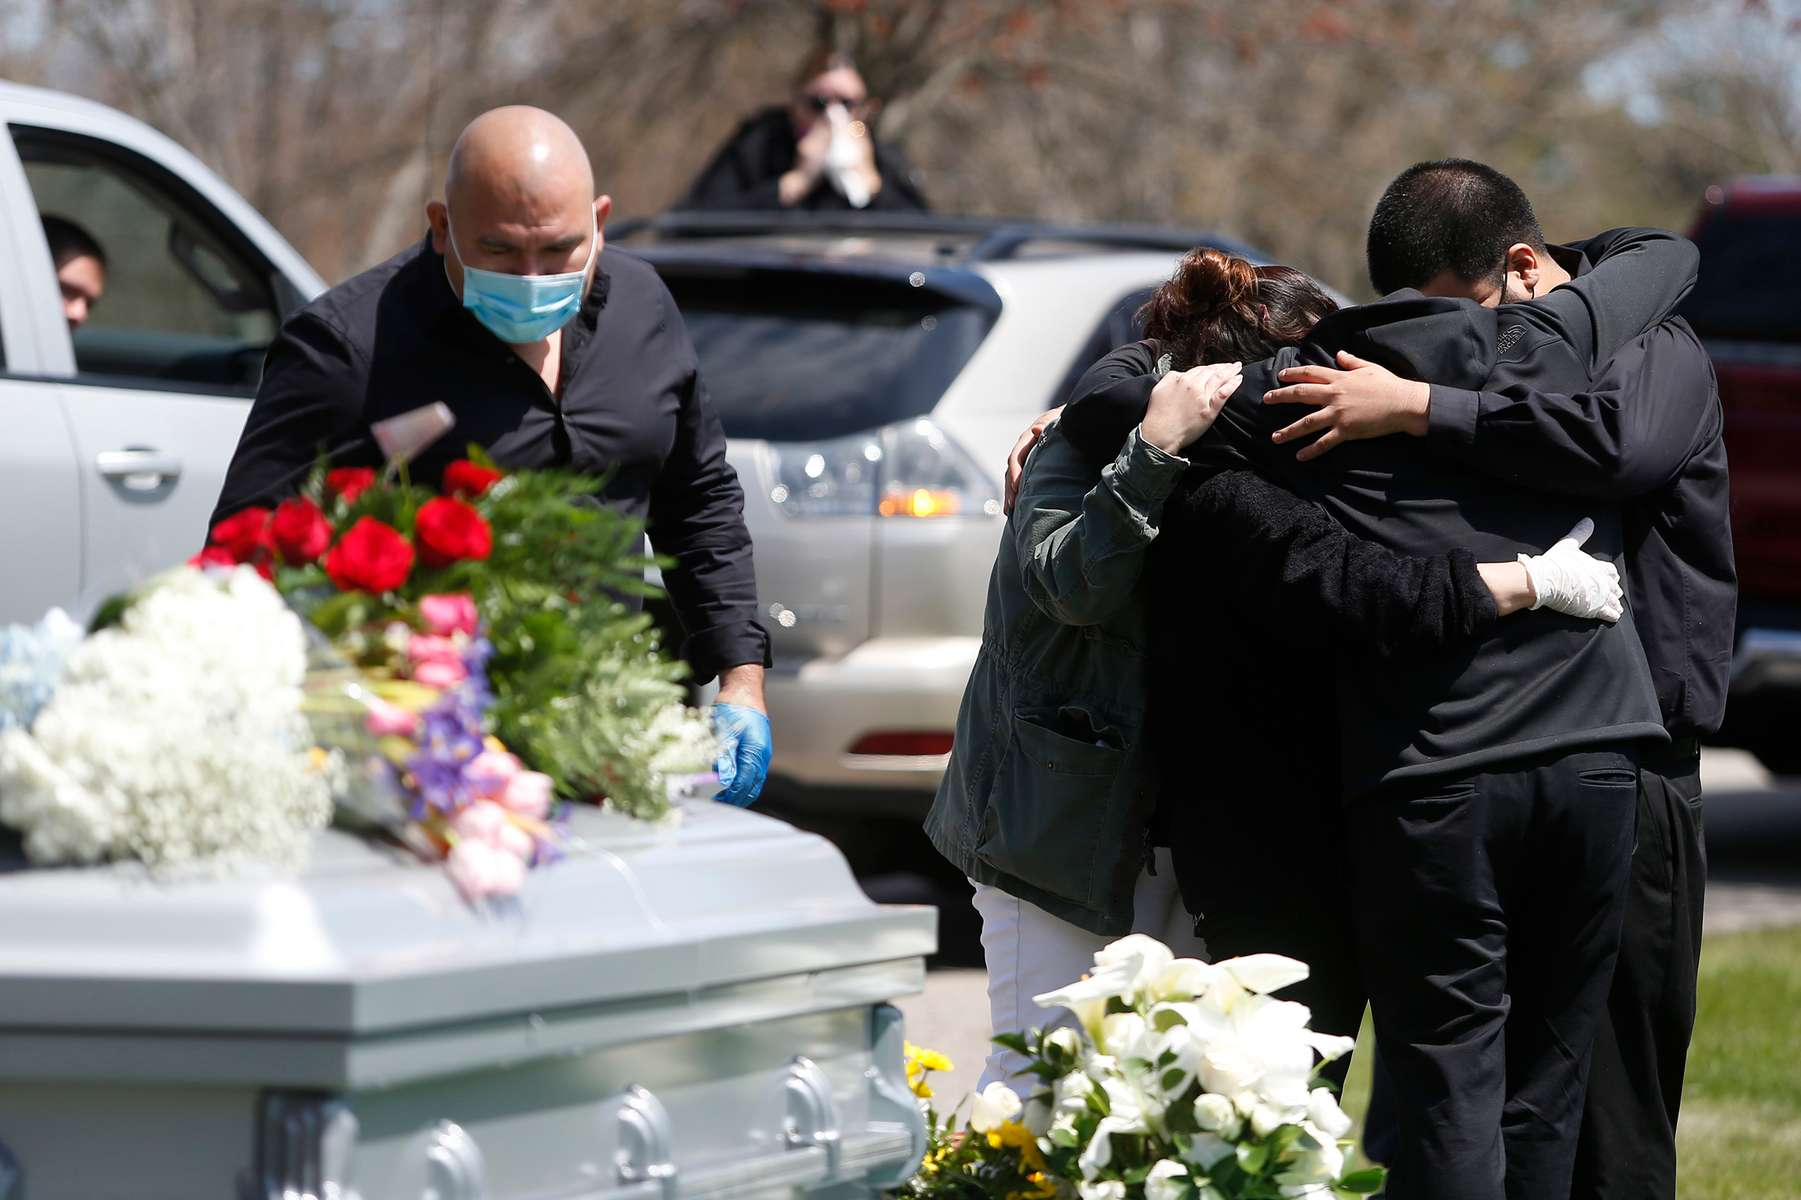 Everett, MA - 4/29/20 - Family members embrace as other mourners look on from the car during the funeral service for Santos A. Rivas at Woodlawn Cemetery in Everett. Due to strict social distancing guidelines only ten people are allowed outside of the car for graveside services at Woodlawn Cemetery in Everett. Friends and family lined three sides of the street surrounding the gravesite to pay their respects to Santos A. Rivas, who passed away from coronavirus or COVID-19. (Jessica Rinaldi/Globe Staff)